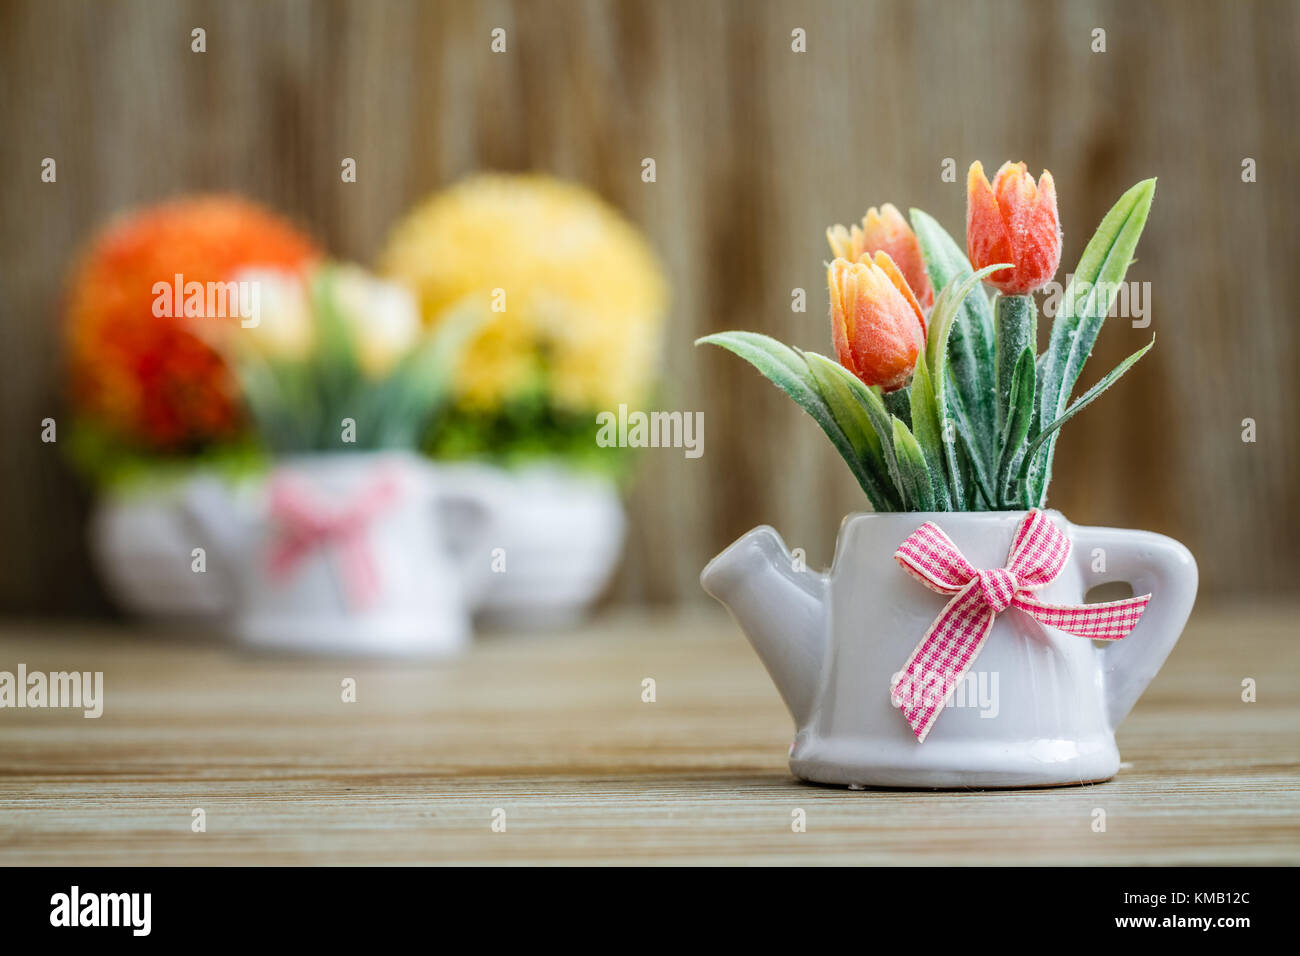 artificial tulips stockfotos artificial tulips bilder alamy. Black Bedroom Furniture Sets. Home Design Ideas